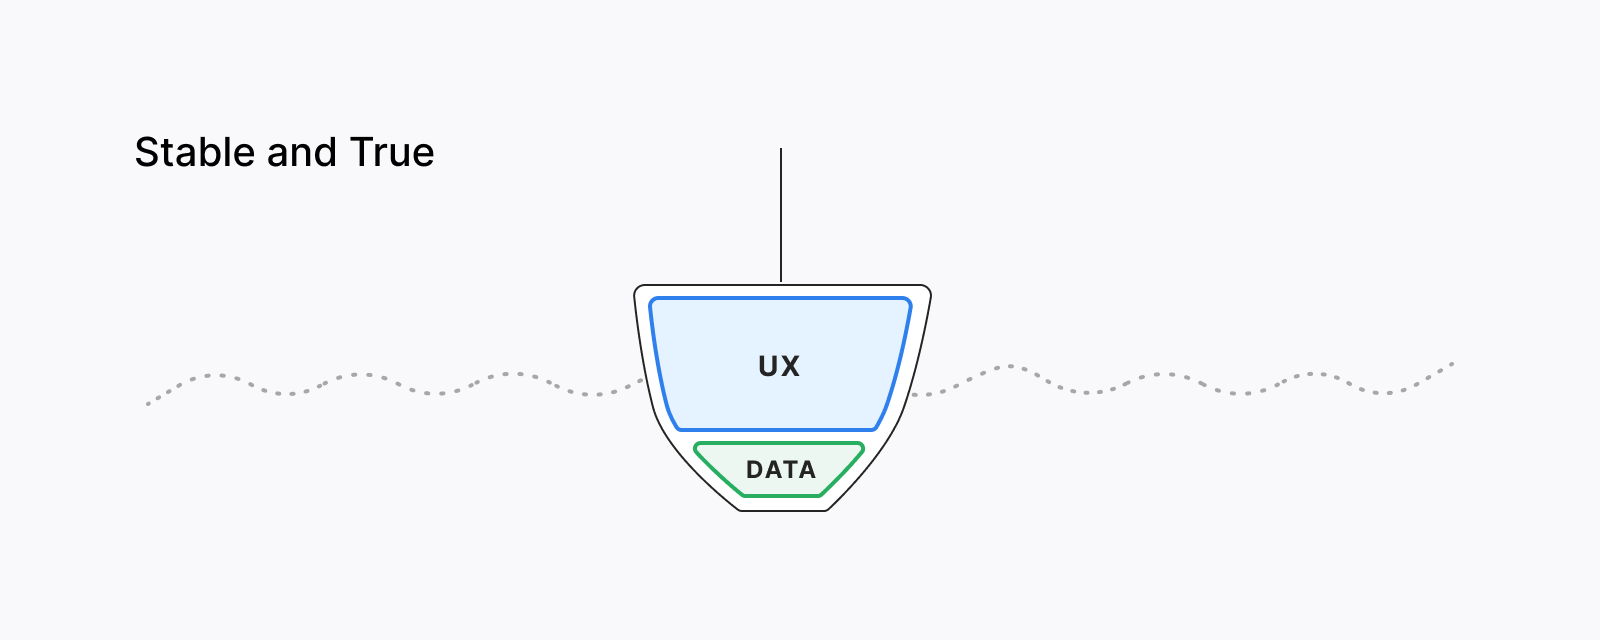 User experience is stable and true with the minimal amount of data